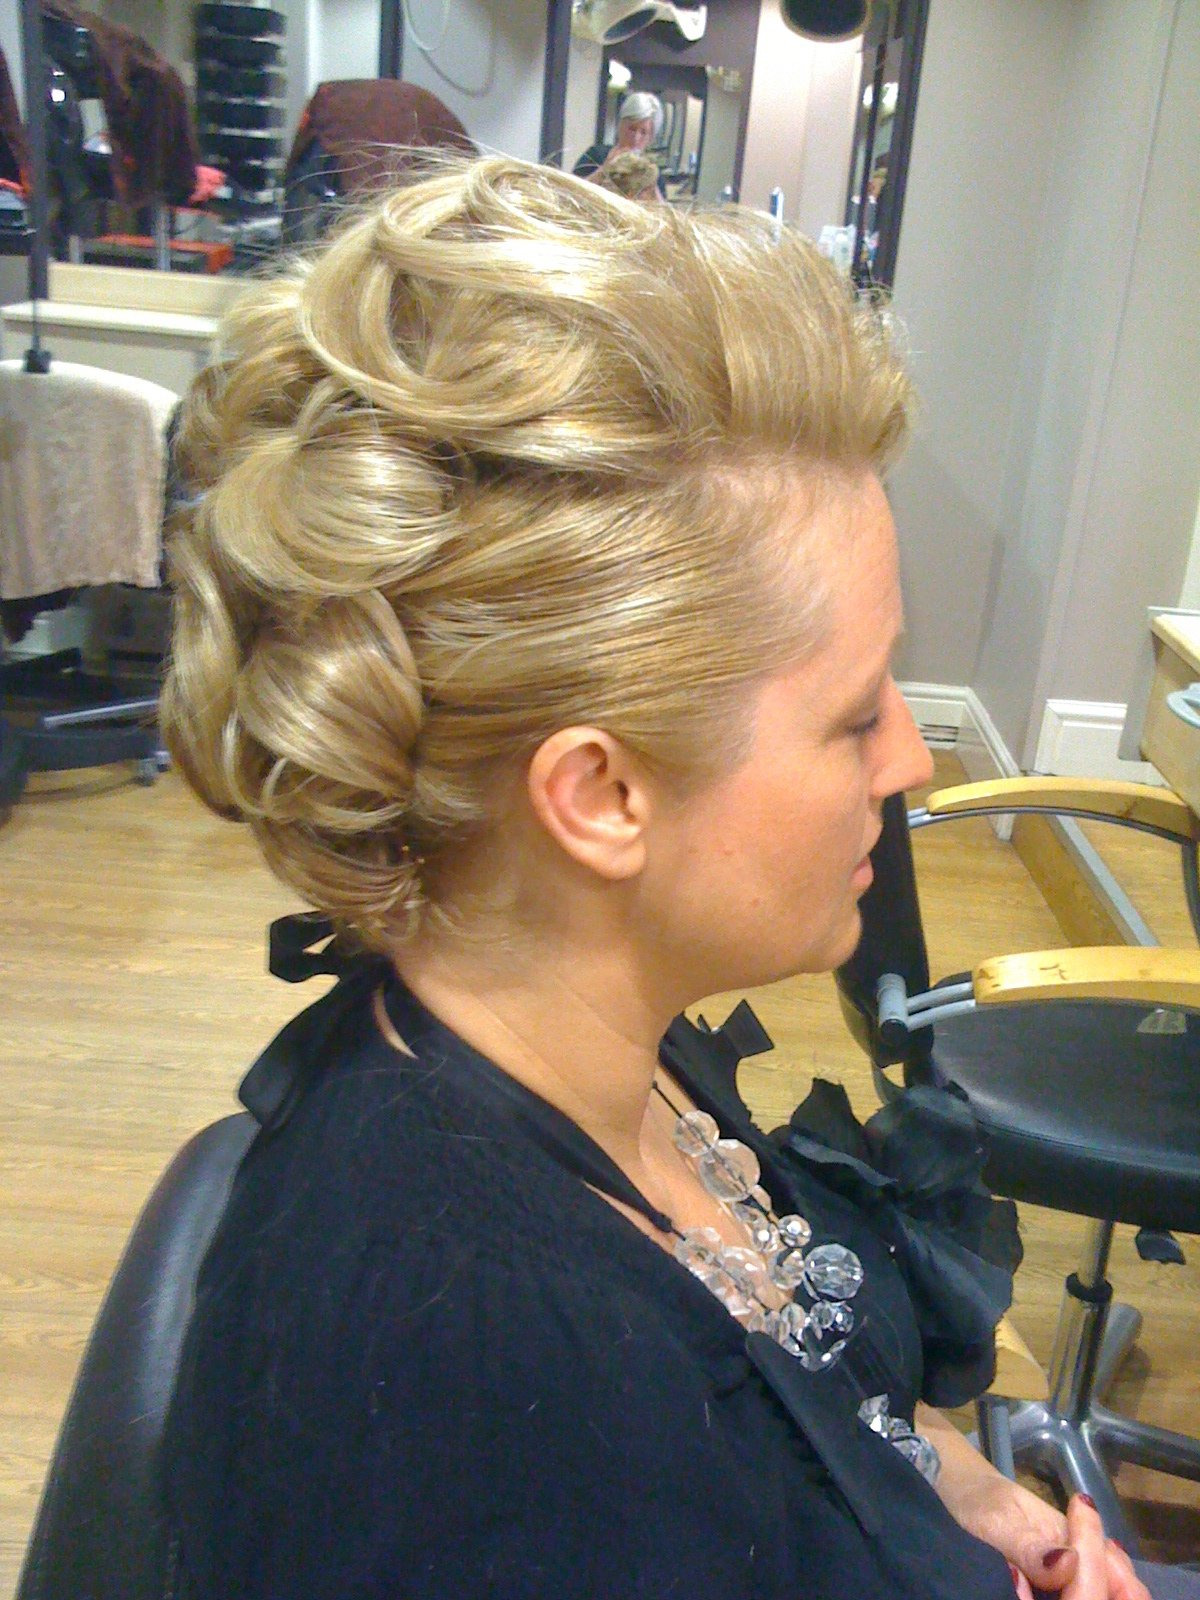 beautifully styled women's hair